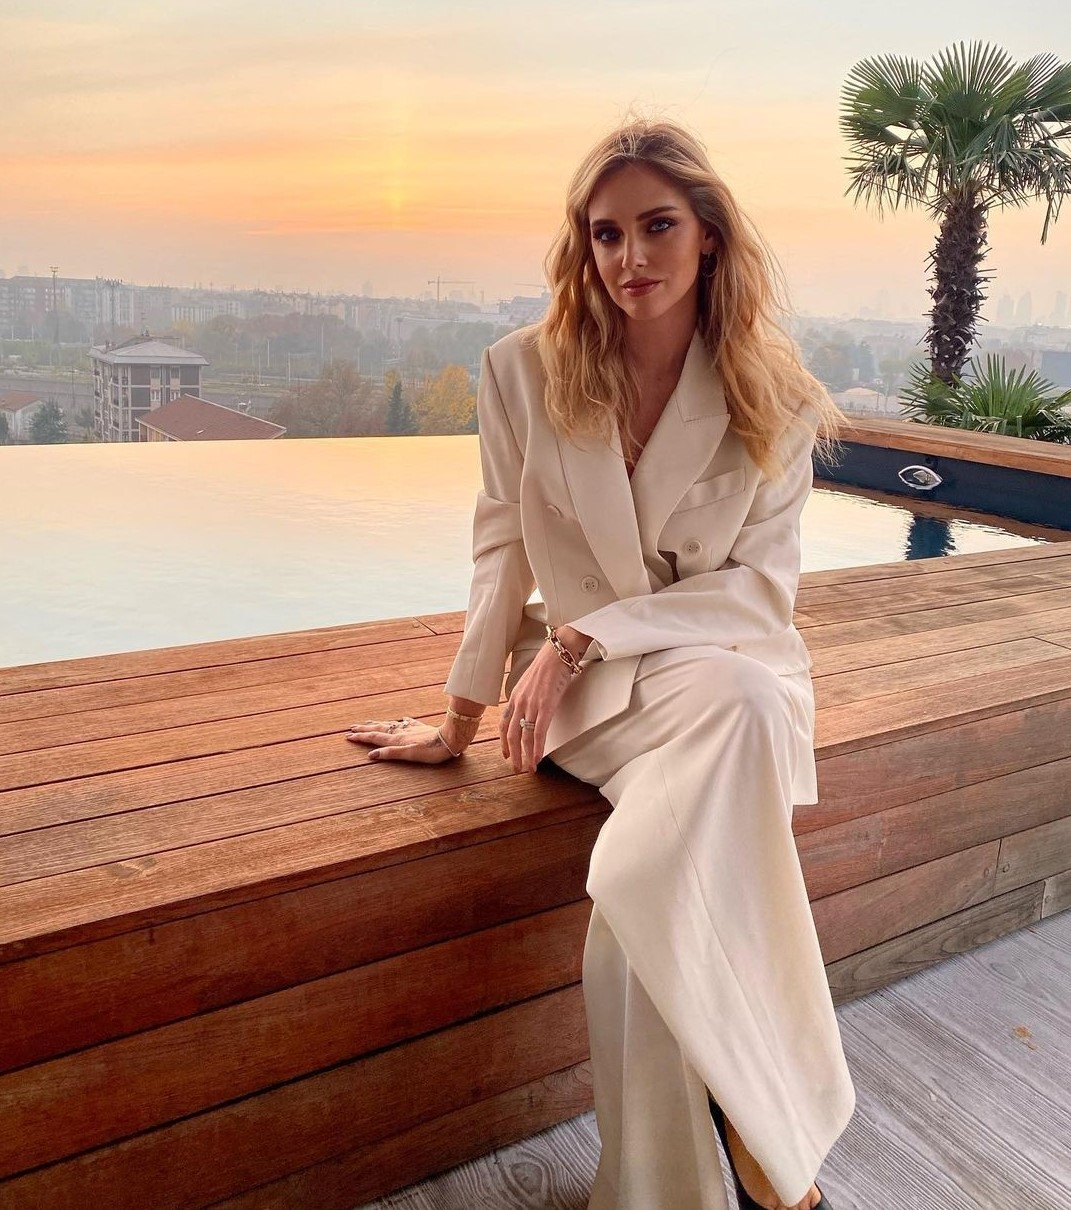 Chiara Ferragni wears the Botanica Man Style Blazer and Pants